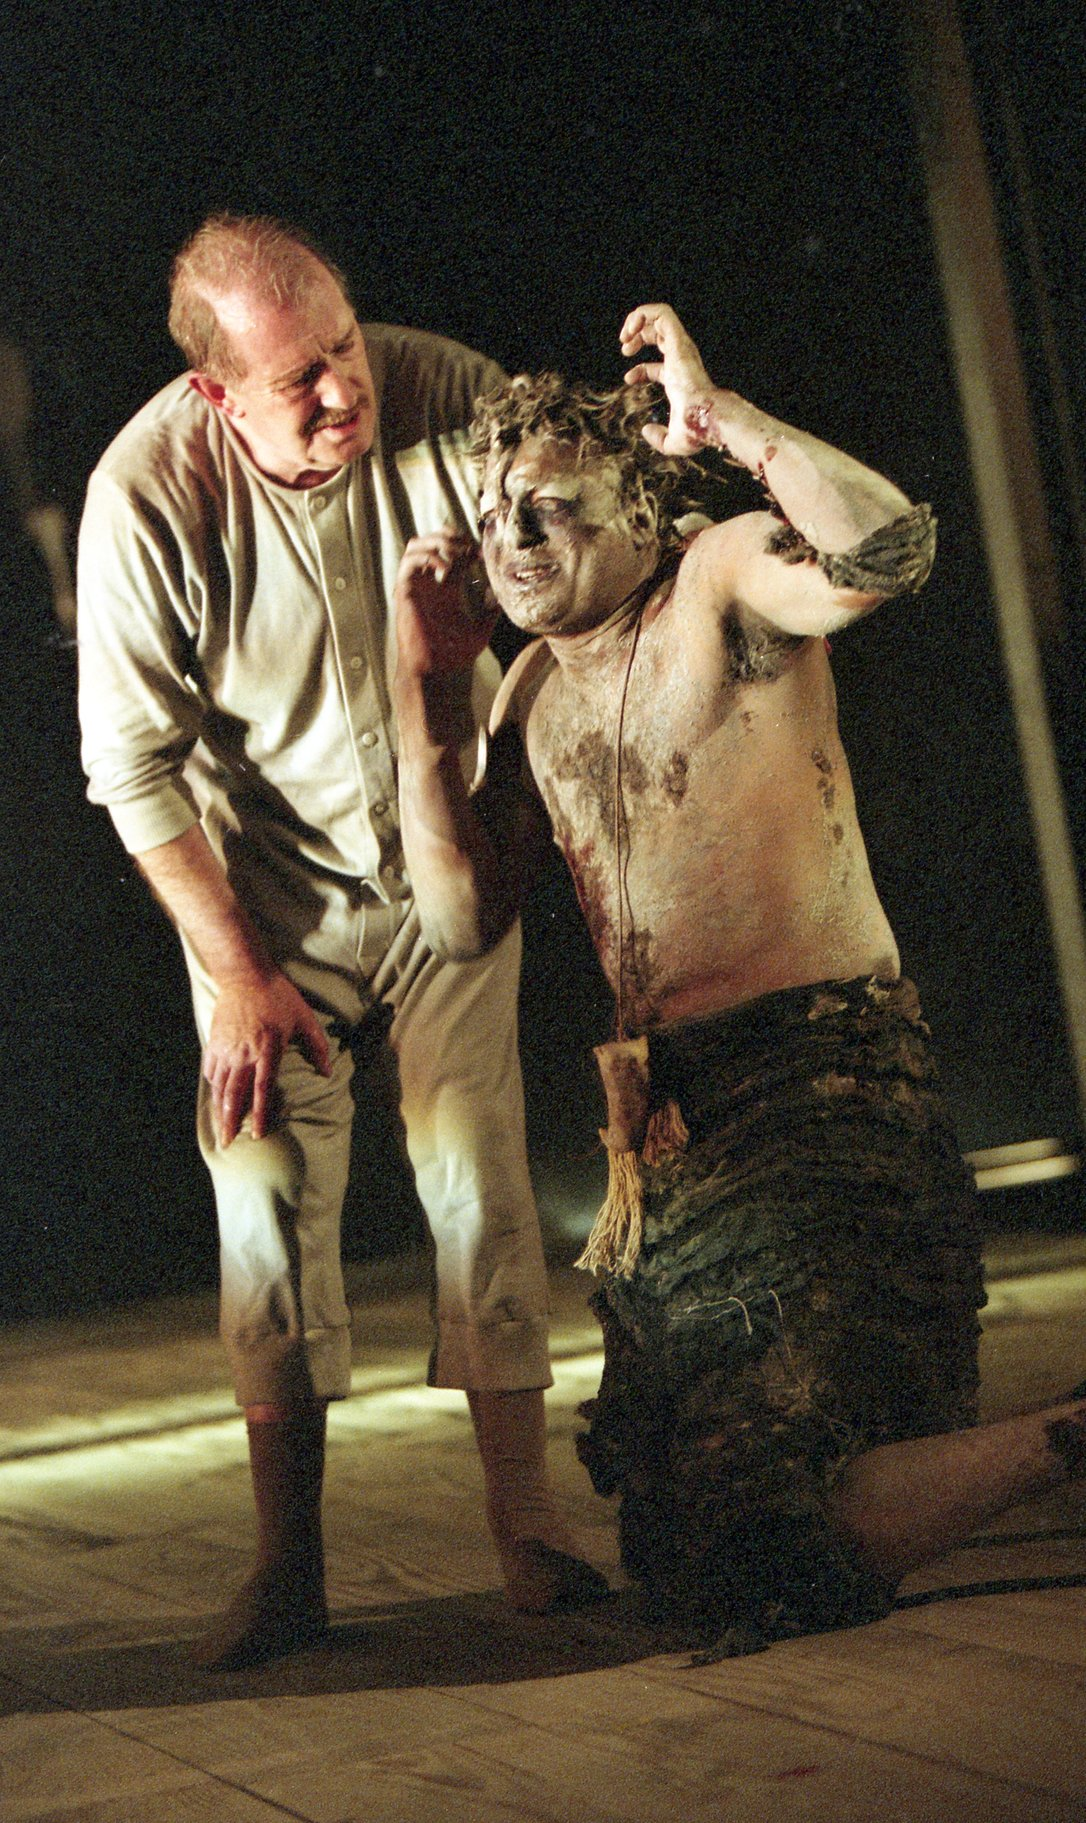 A man in long johns grips the neck of a man covered in mud and leaves.